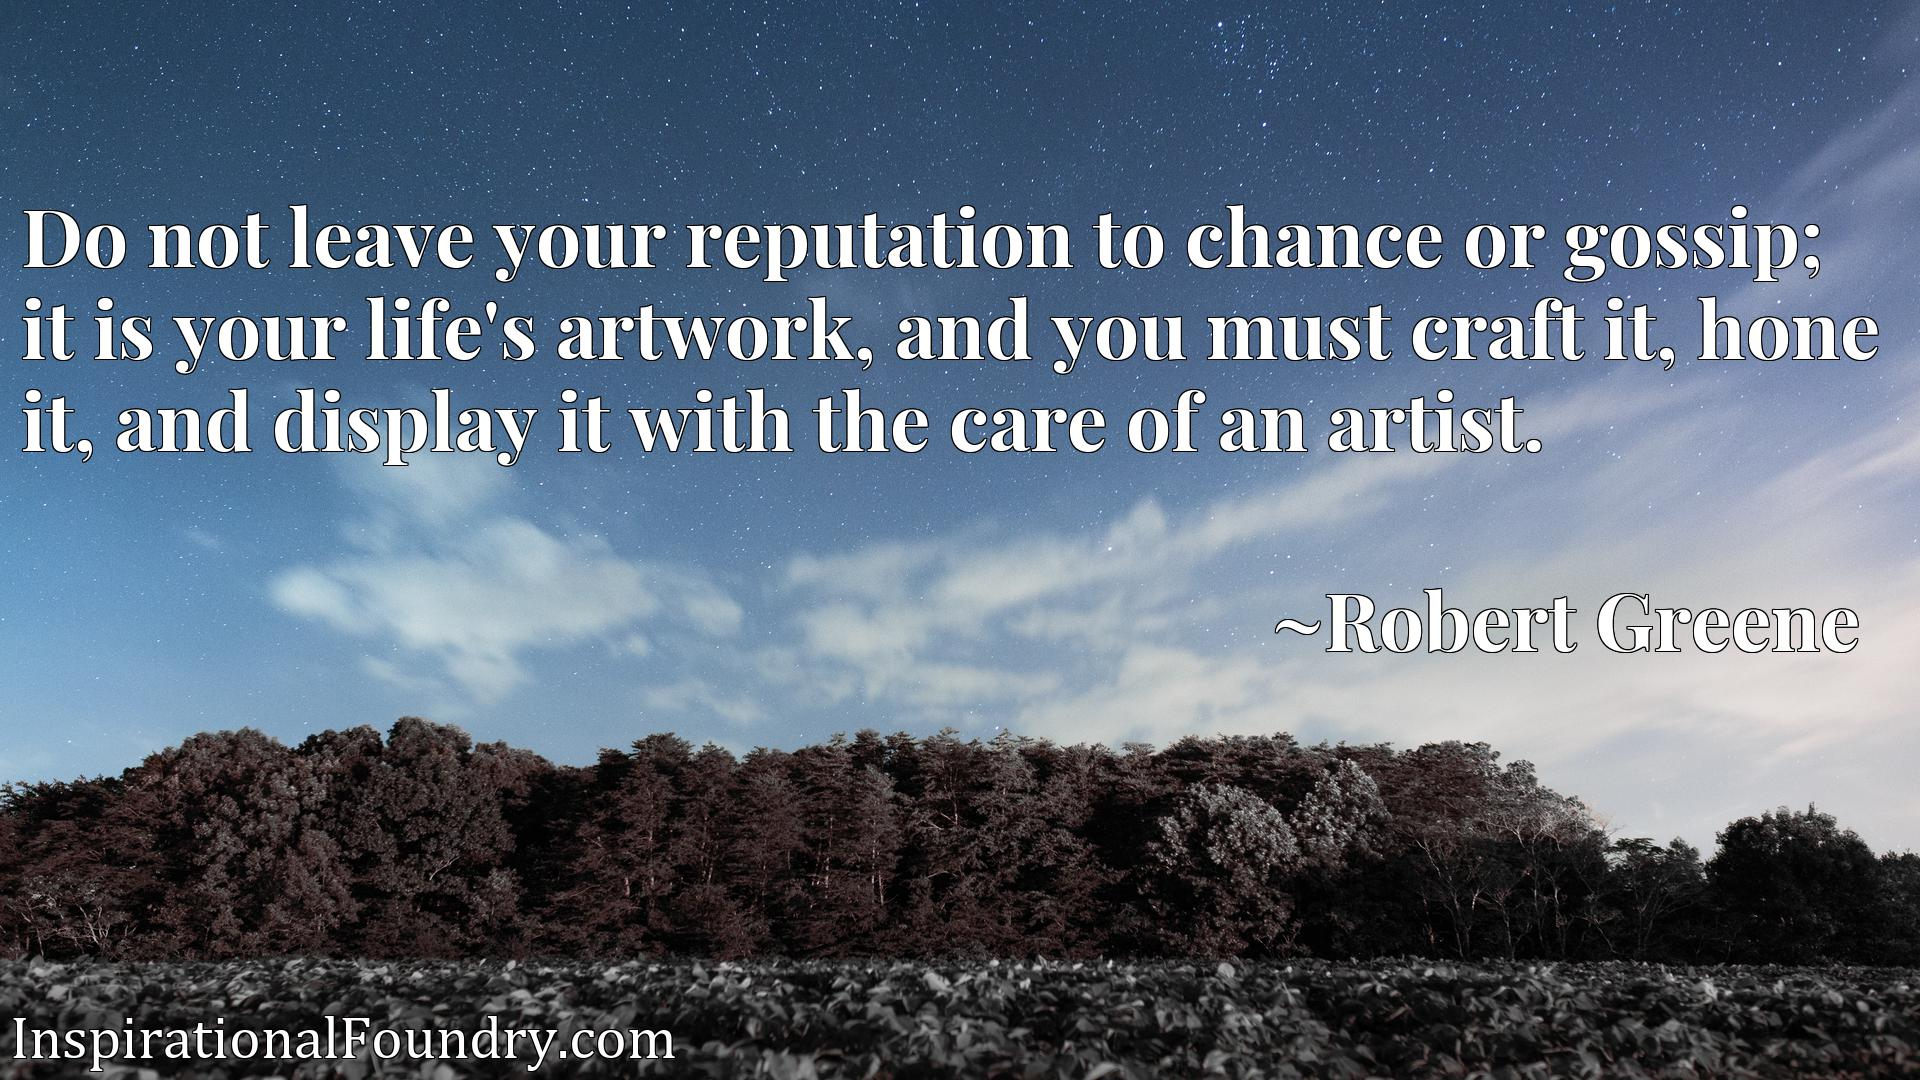 Do not leave your reputation to chance or gossip; it is your life's artwork, and you must craft it, hone it, and display it with the care of an artist.